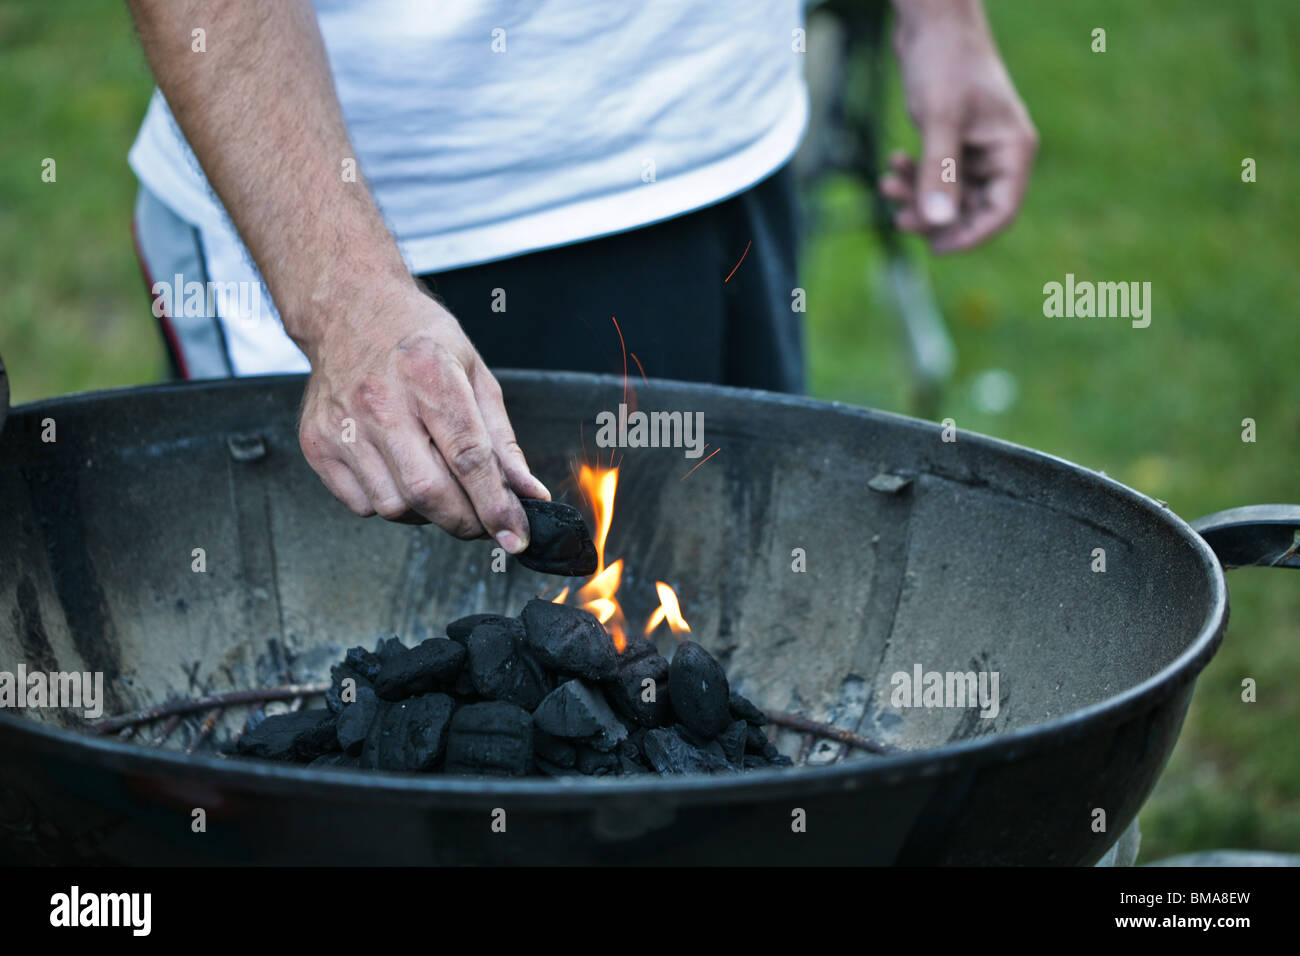 Man holding charcoal briquette and lighting the barbecue grill. & Man holding charcoal briquette and lighting the barbecue grill Stock ...